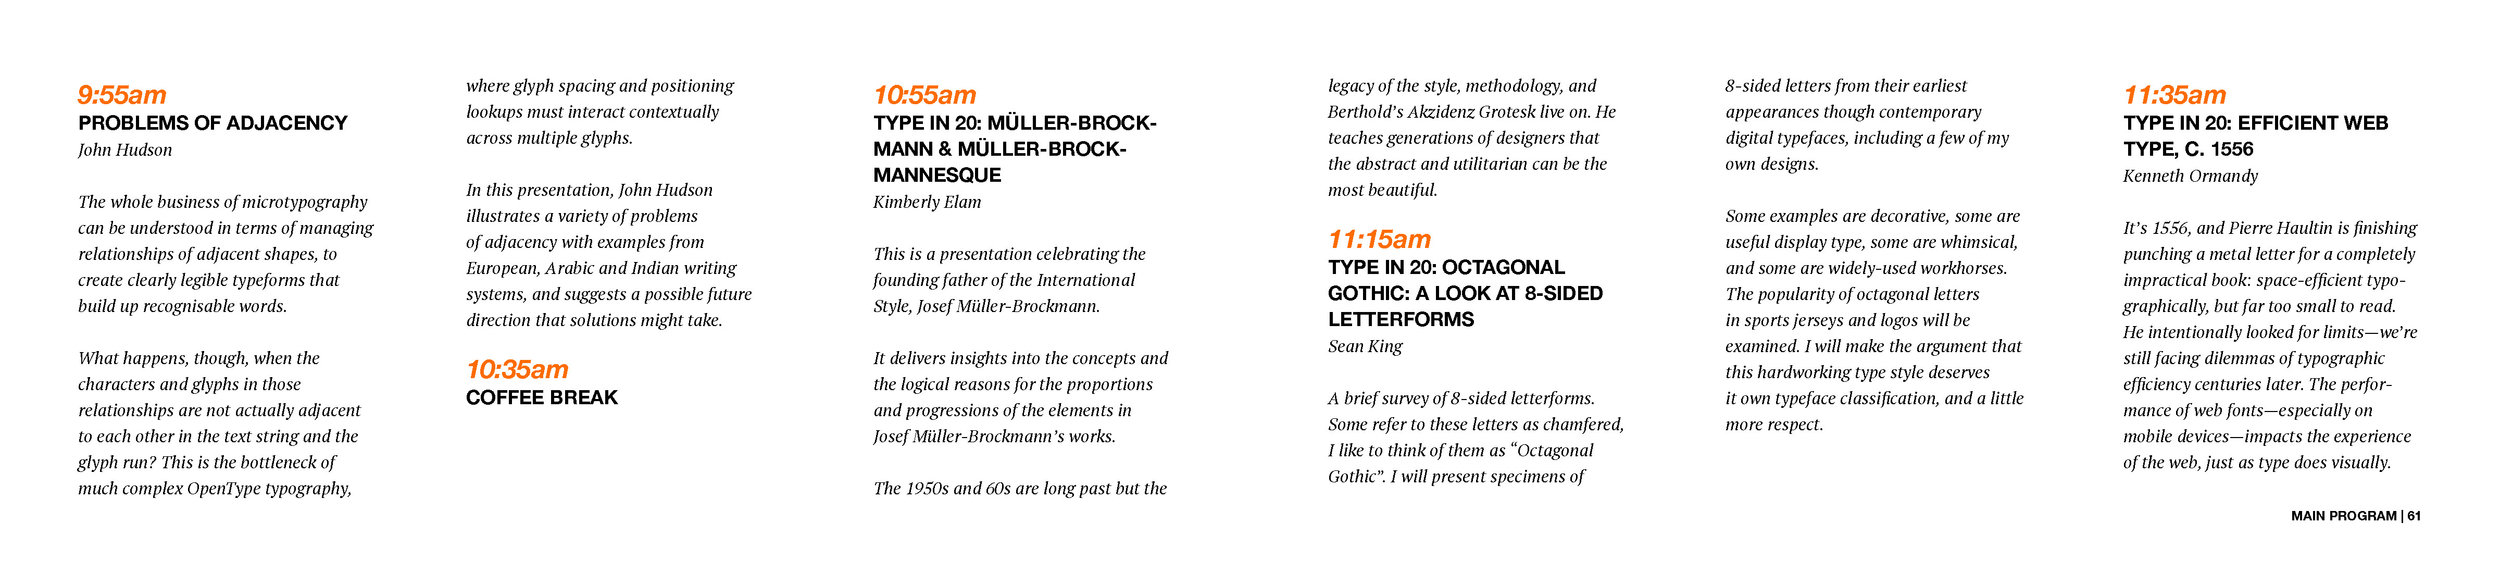 typecon_book_NEW_Page_31.jpg